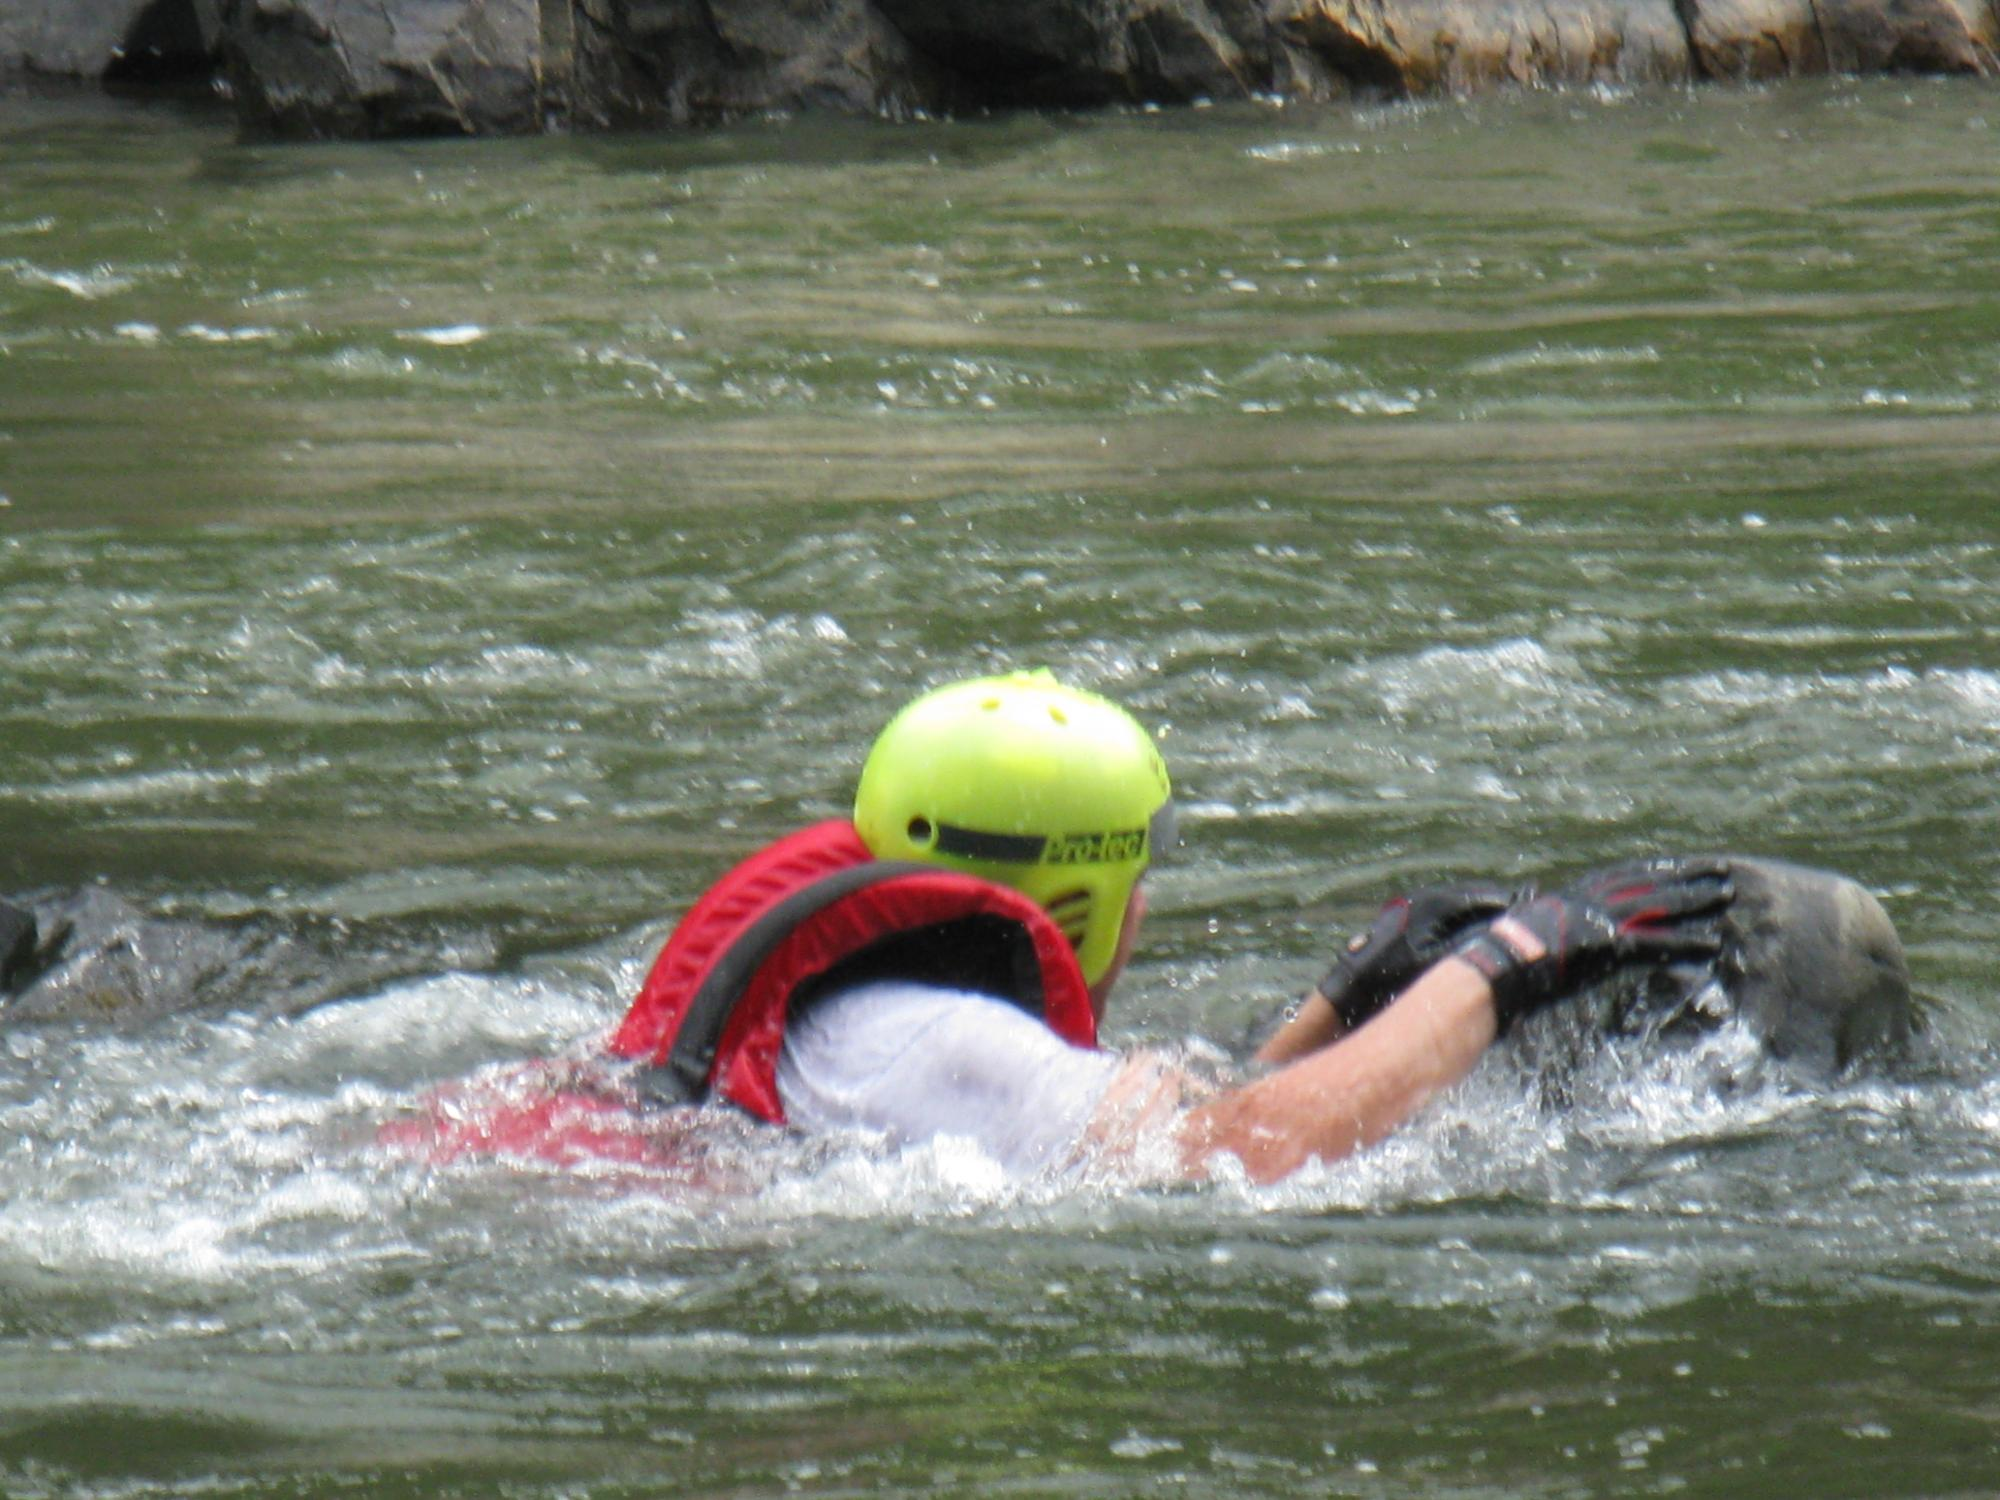 A member was stuck on a rock during Swift water training.